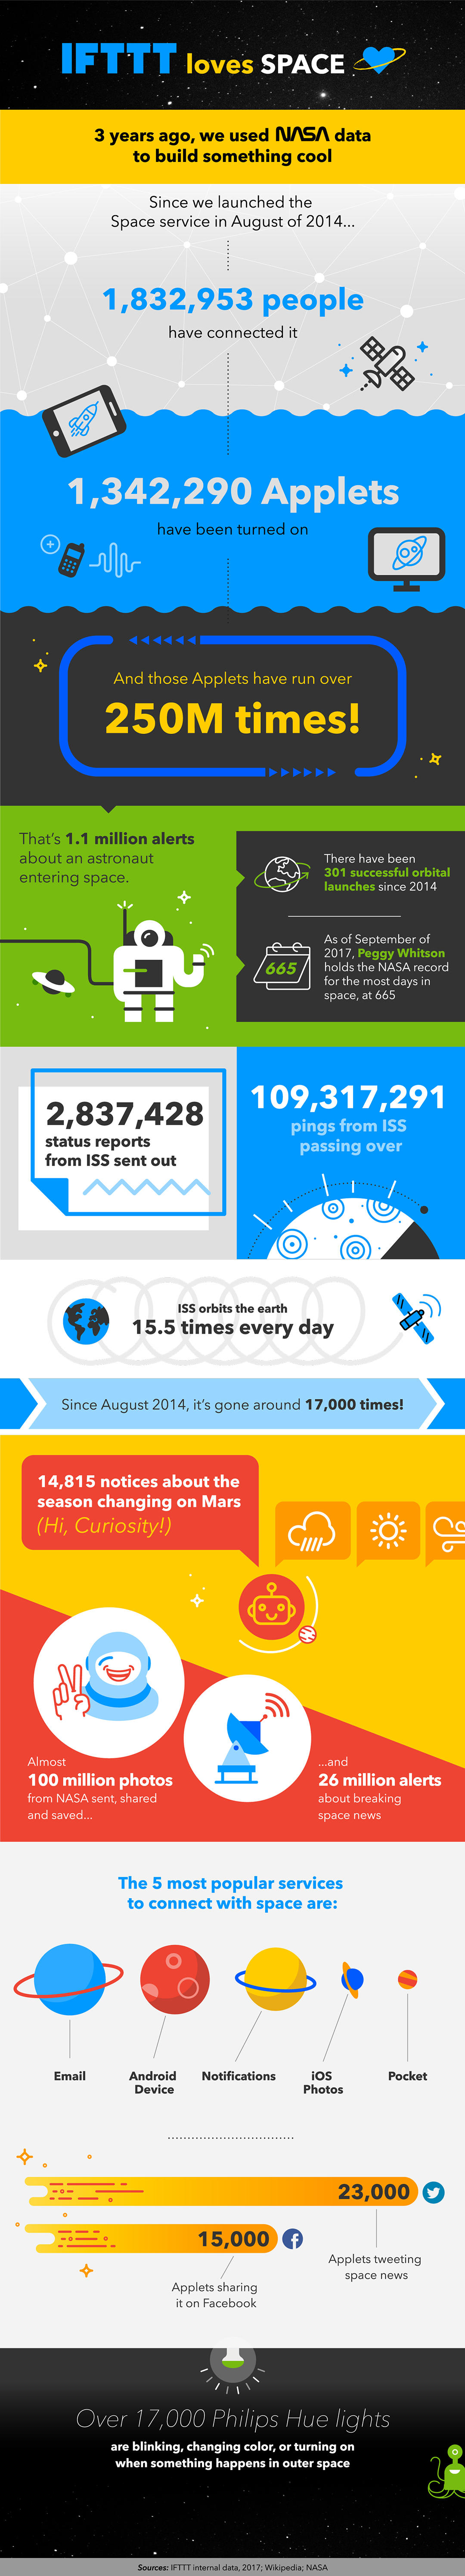 IFTTT loves outer space infographic